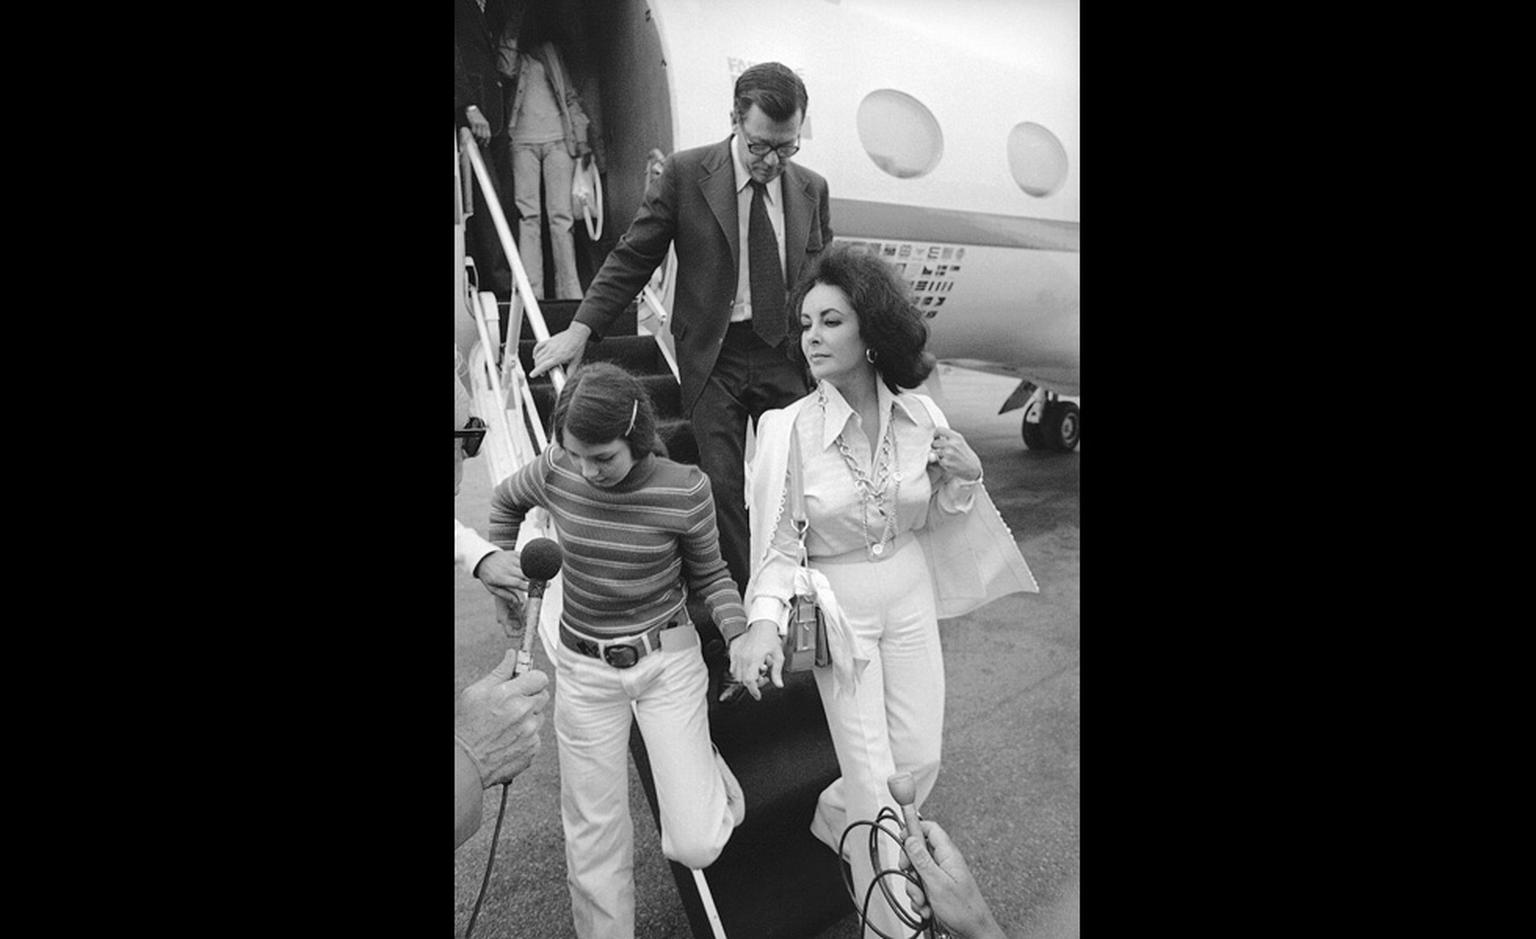 July 5 1973 in Los Angeles with adopted daughter Maria Burton as Liz Taylor faces journalists after announcing her separation from Richard Burton. She wears the Van Cleef & Arpels Sevres pendant.